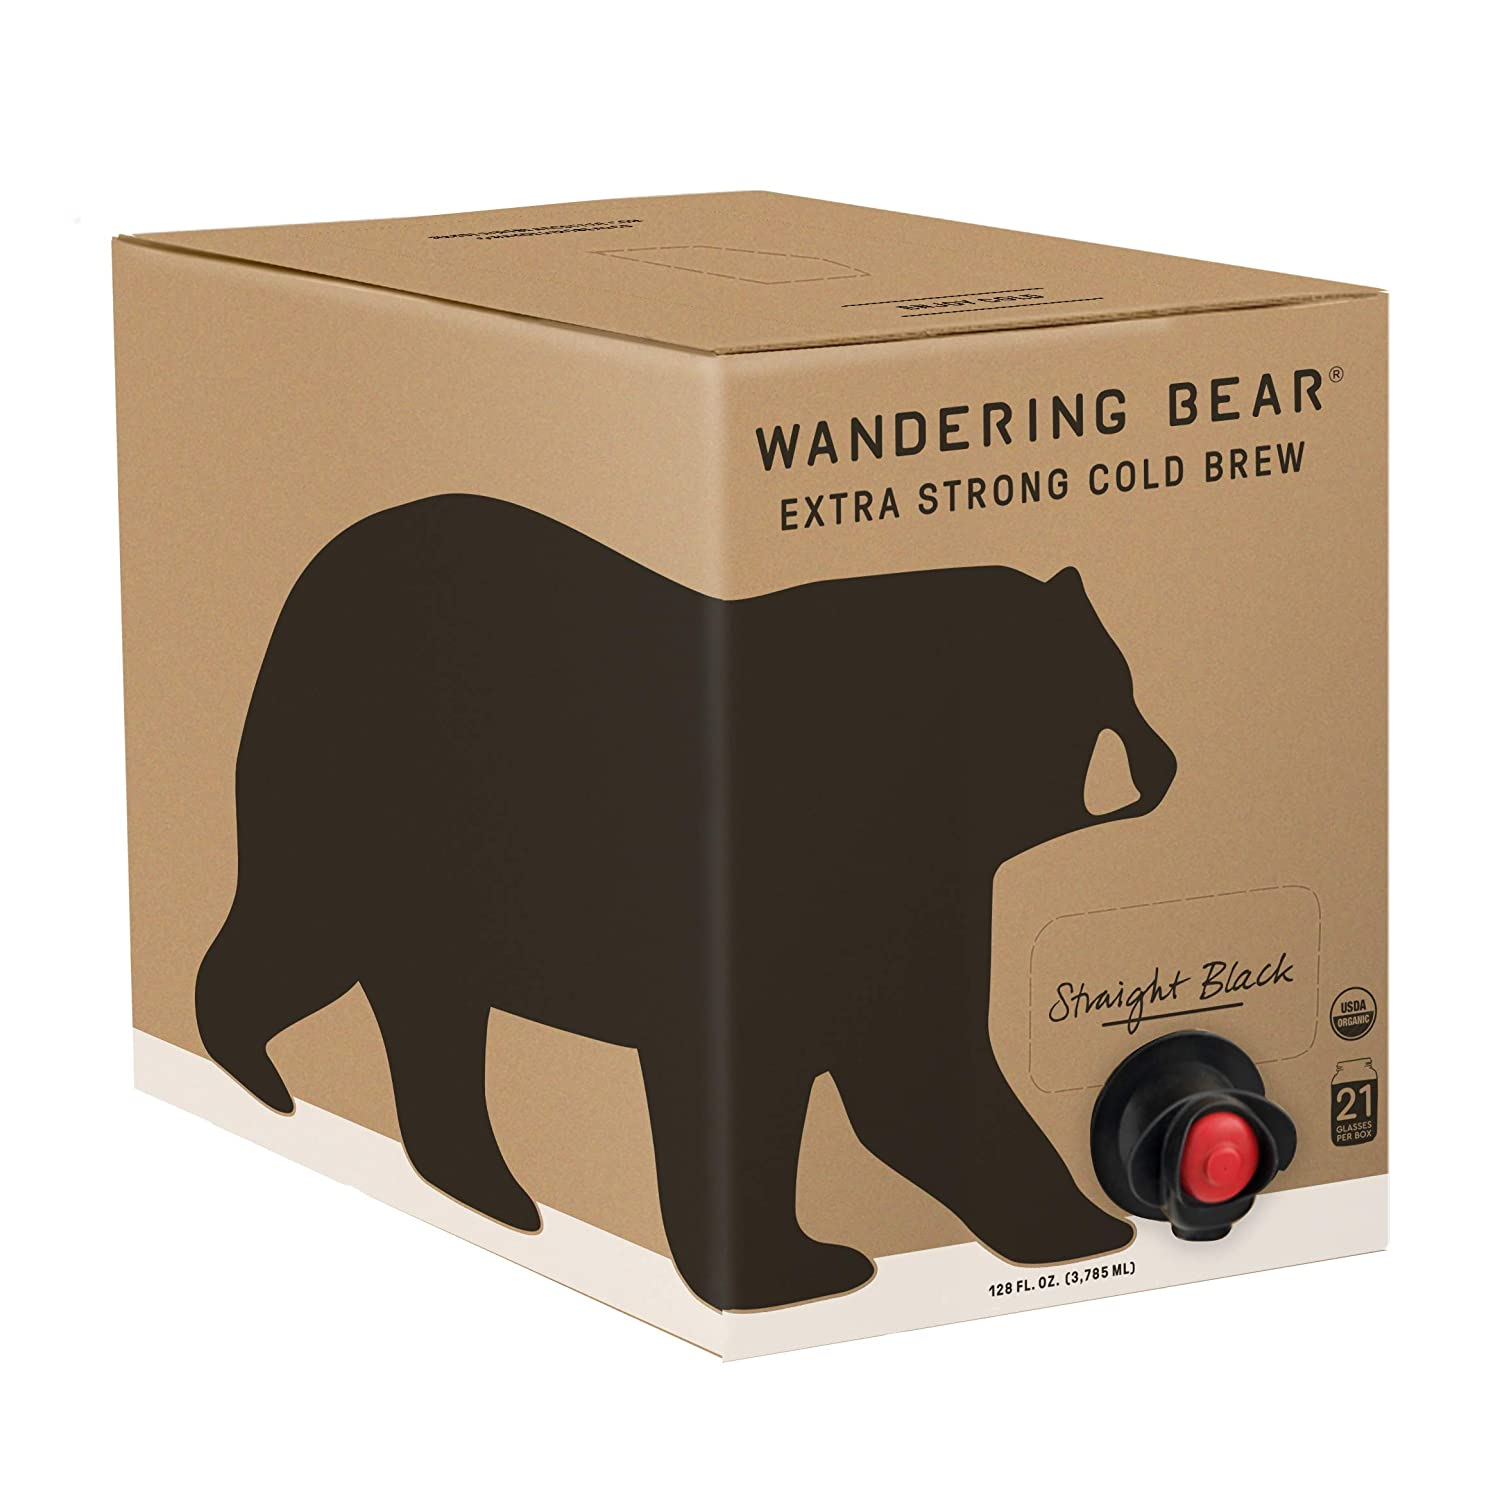 Wandering Bear Extra Strong Organic Cold Brew Coffee On Tap, Straight Black, 128 fl oz (1 gallon) - Smooth, Unsweetened, Shelf-Stable, and Ready to Drink Cold Brew